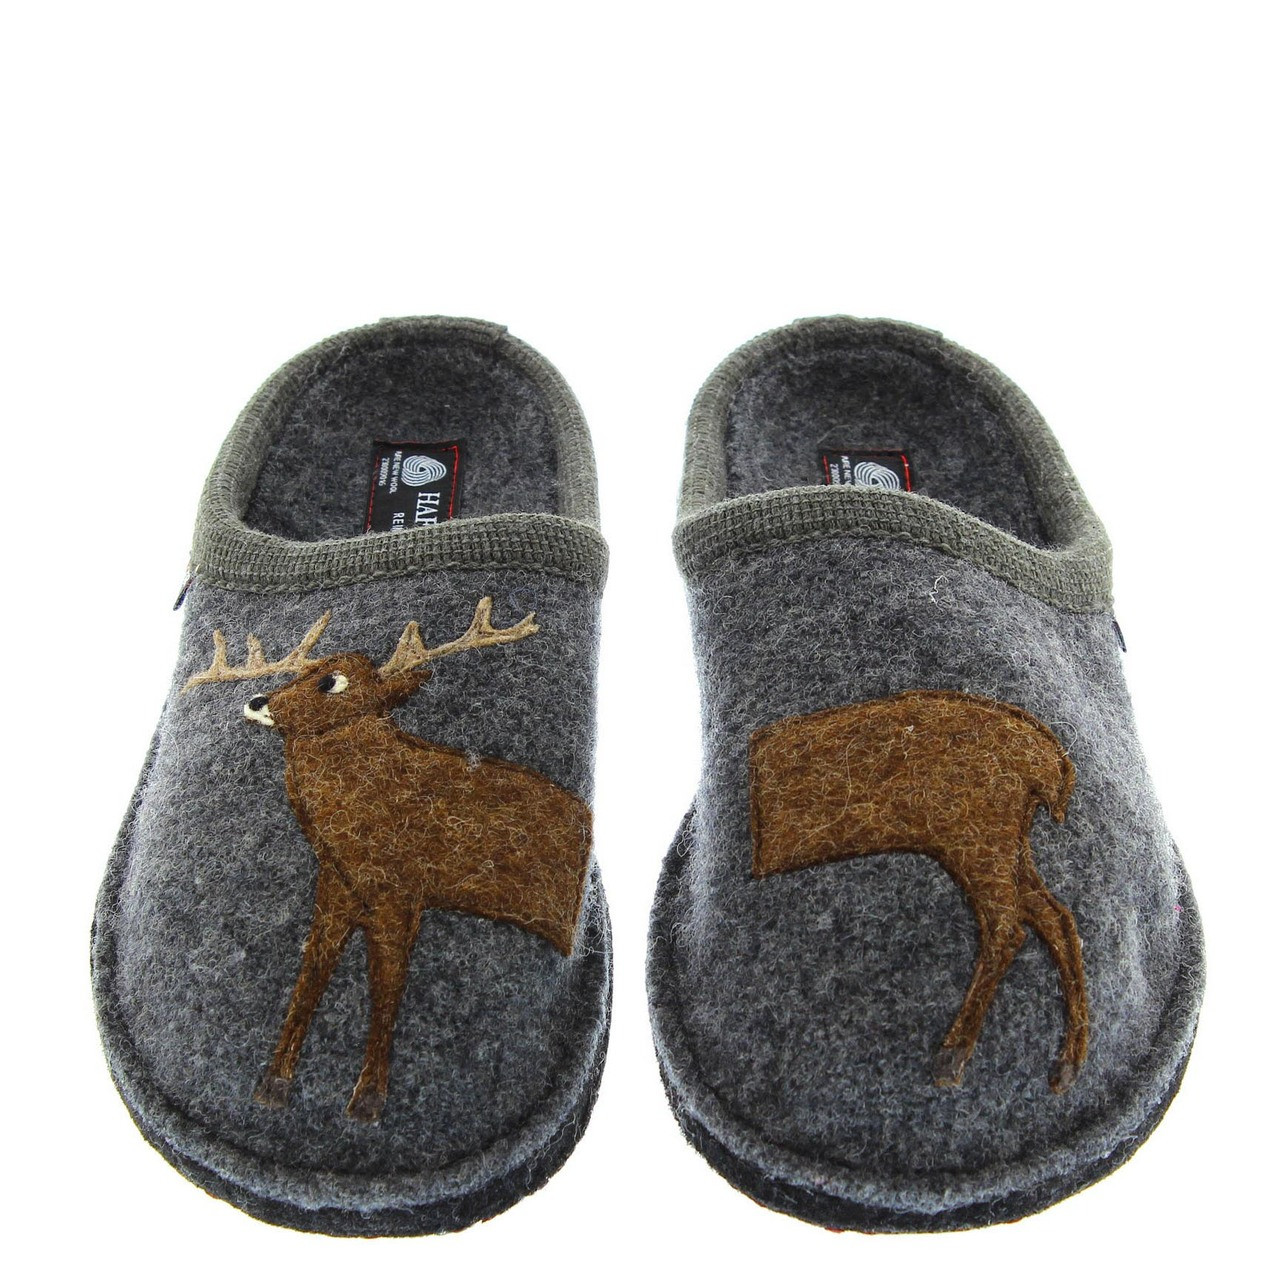 772b6f1dbd1 Haflinger Boiled Wool Soft Sole Deer Slippers - Herbert s Boots and Western  Wear